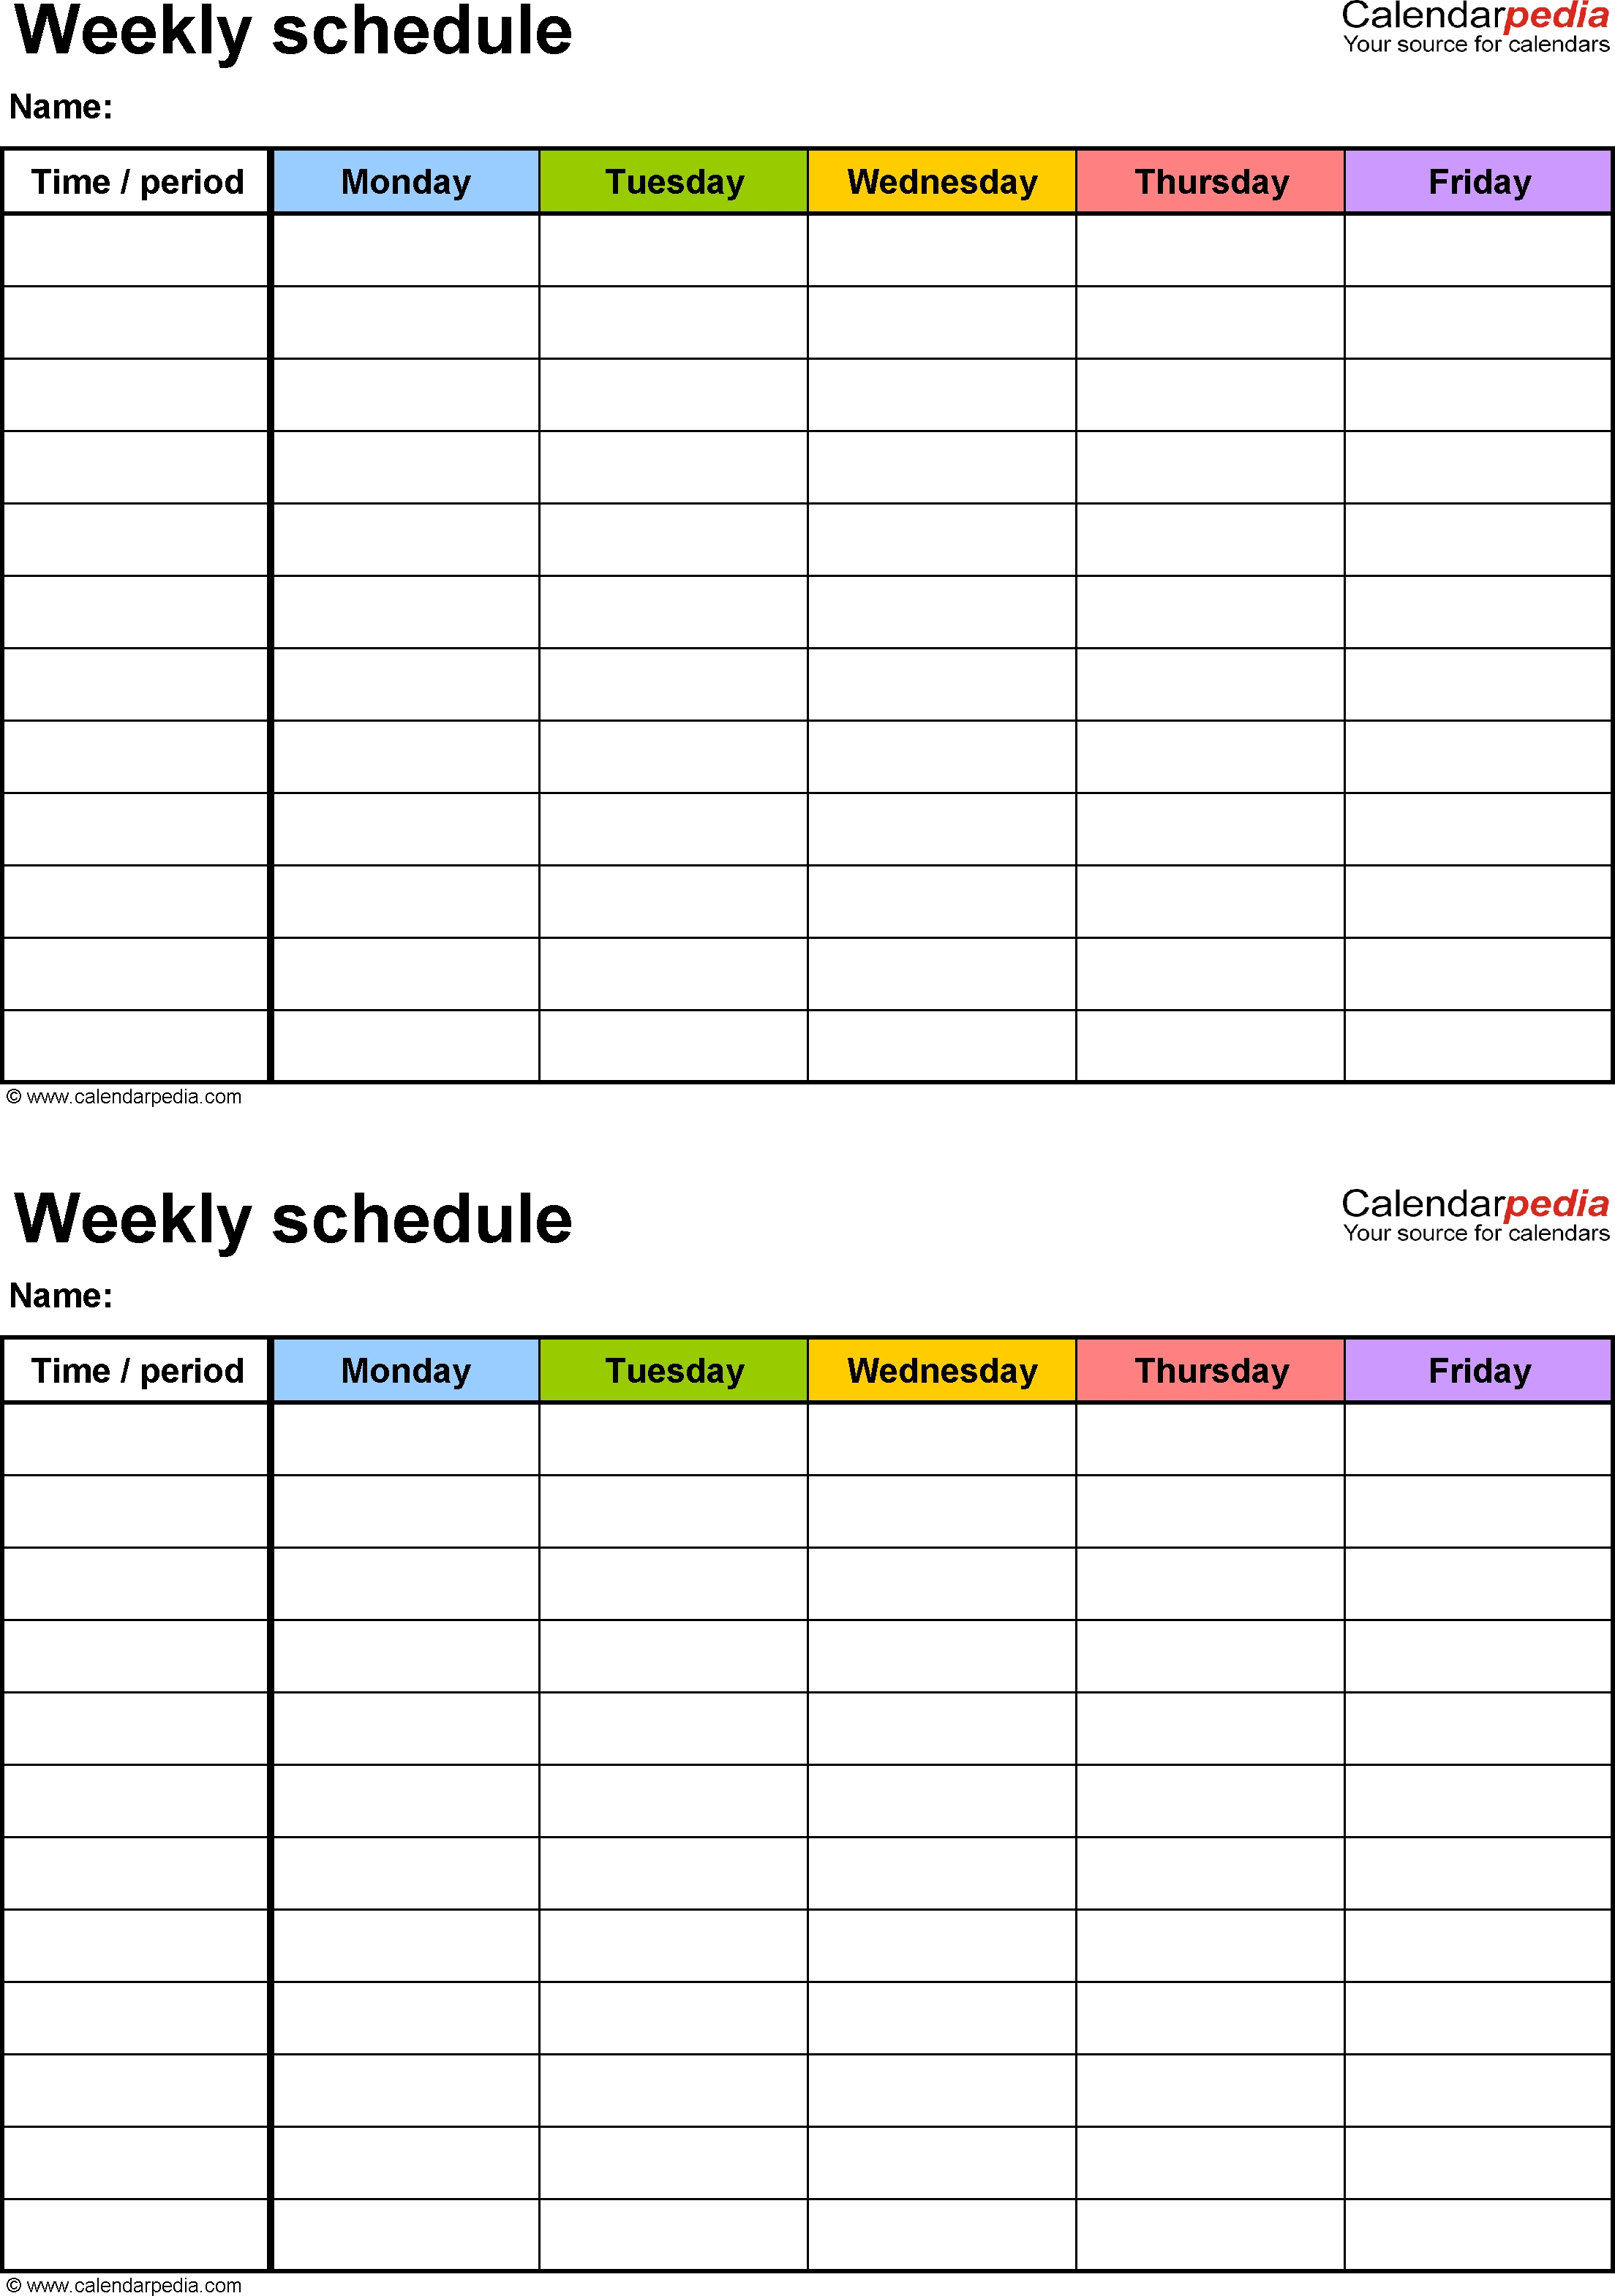 Free Weekly Schedule Templates For Word - 18 Templates-Monday To Friday Template